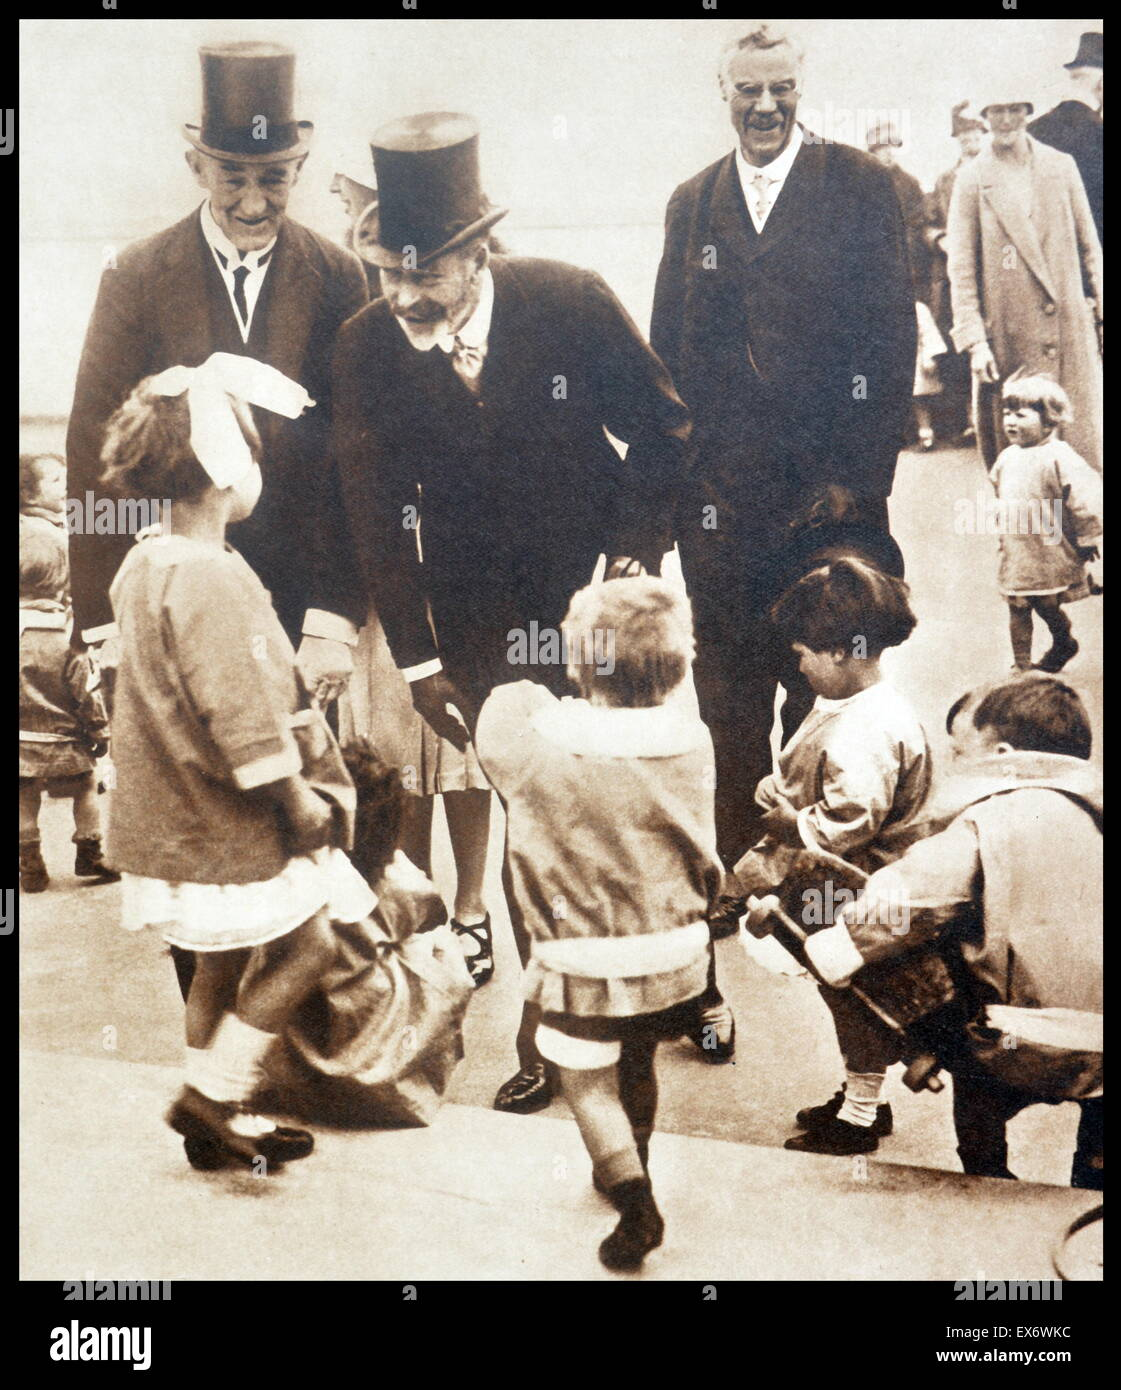 King George V of Great Britain receives good wishes from children 1930 - Stock Image